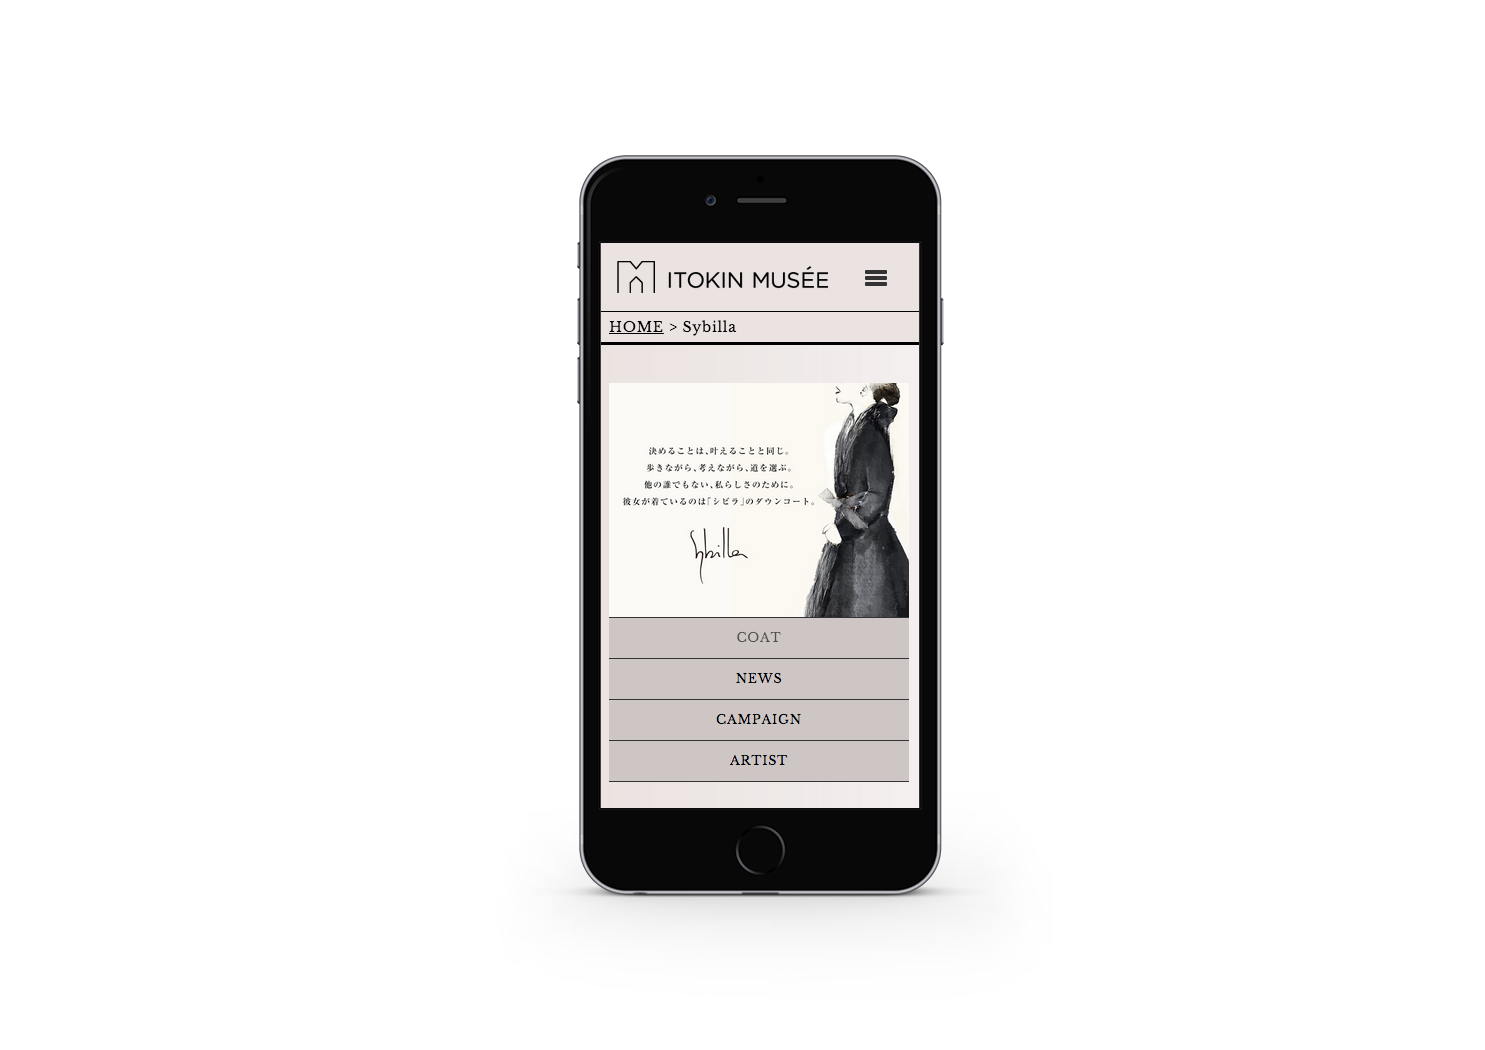 ITOKIN MUSEE Official Smartphone site 2014